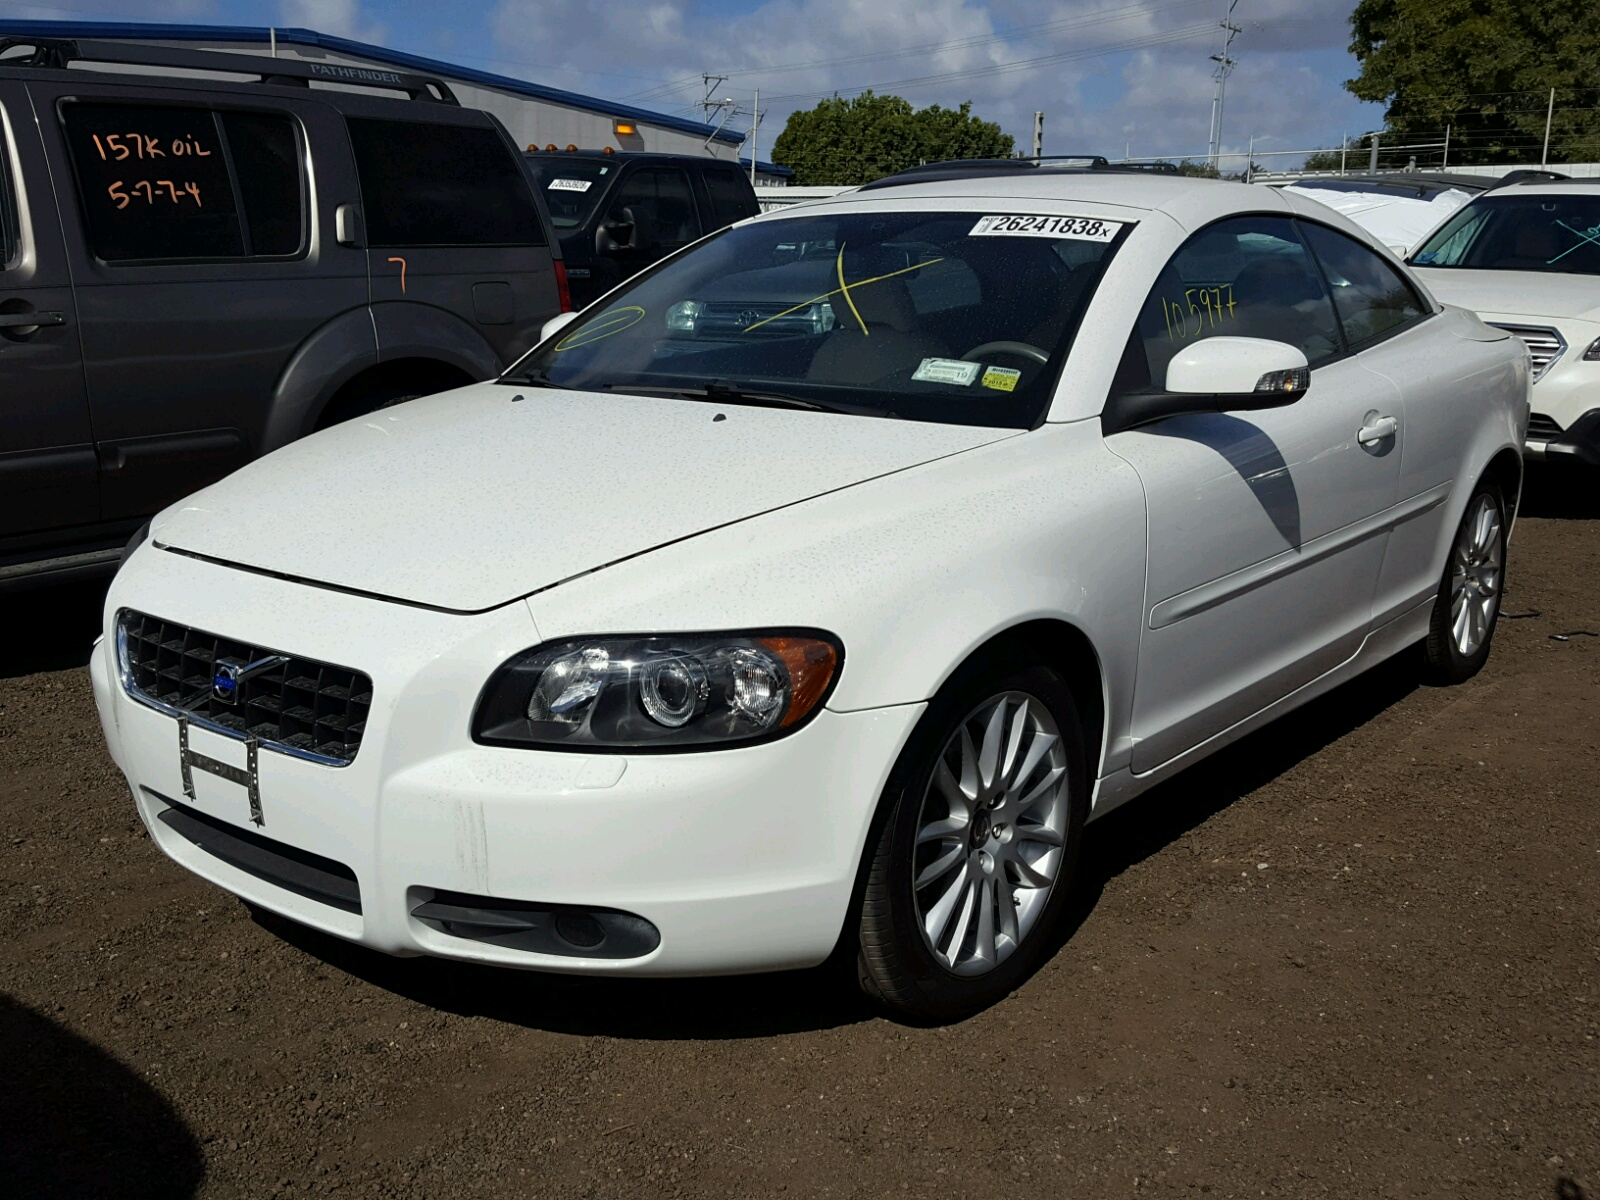 sale for store convertible volvo turbo